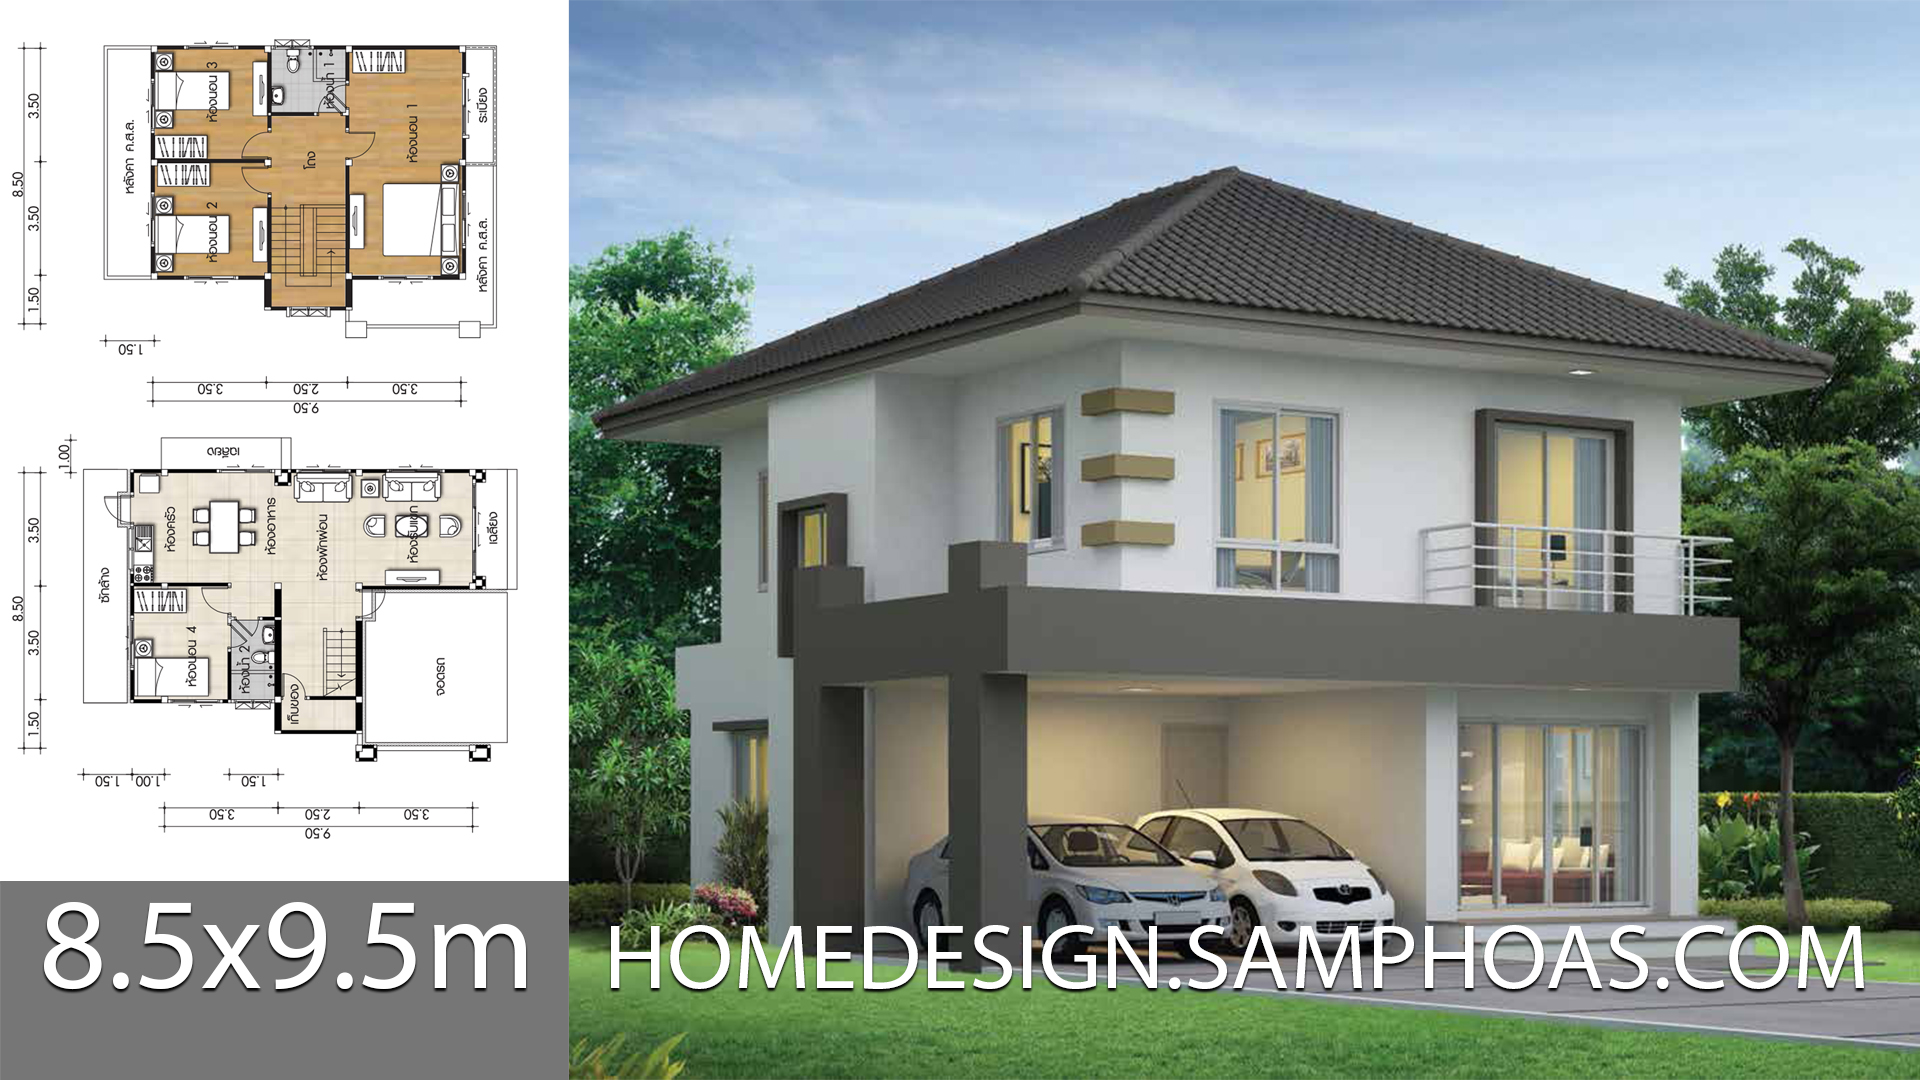 House design plans 8.5x9.5m with 4 bedrooms - Home Ideas